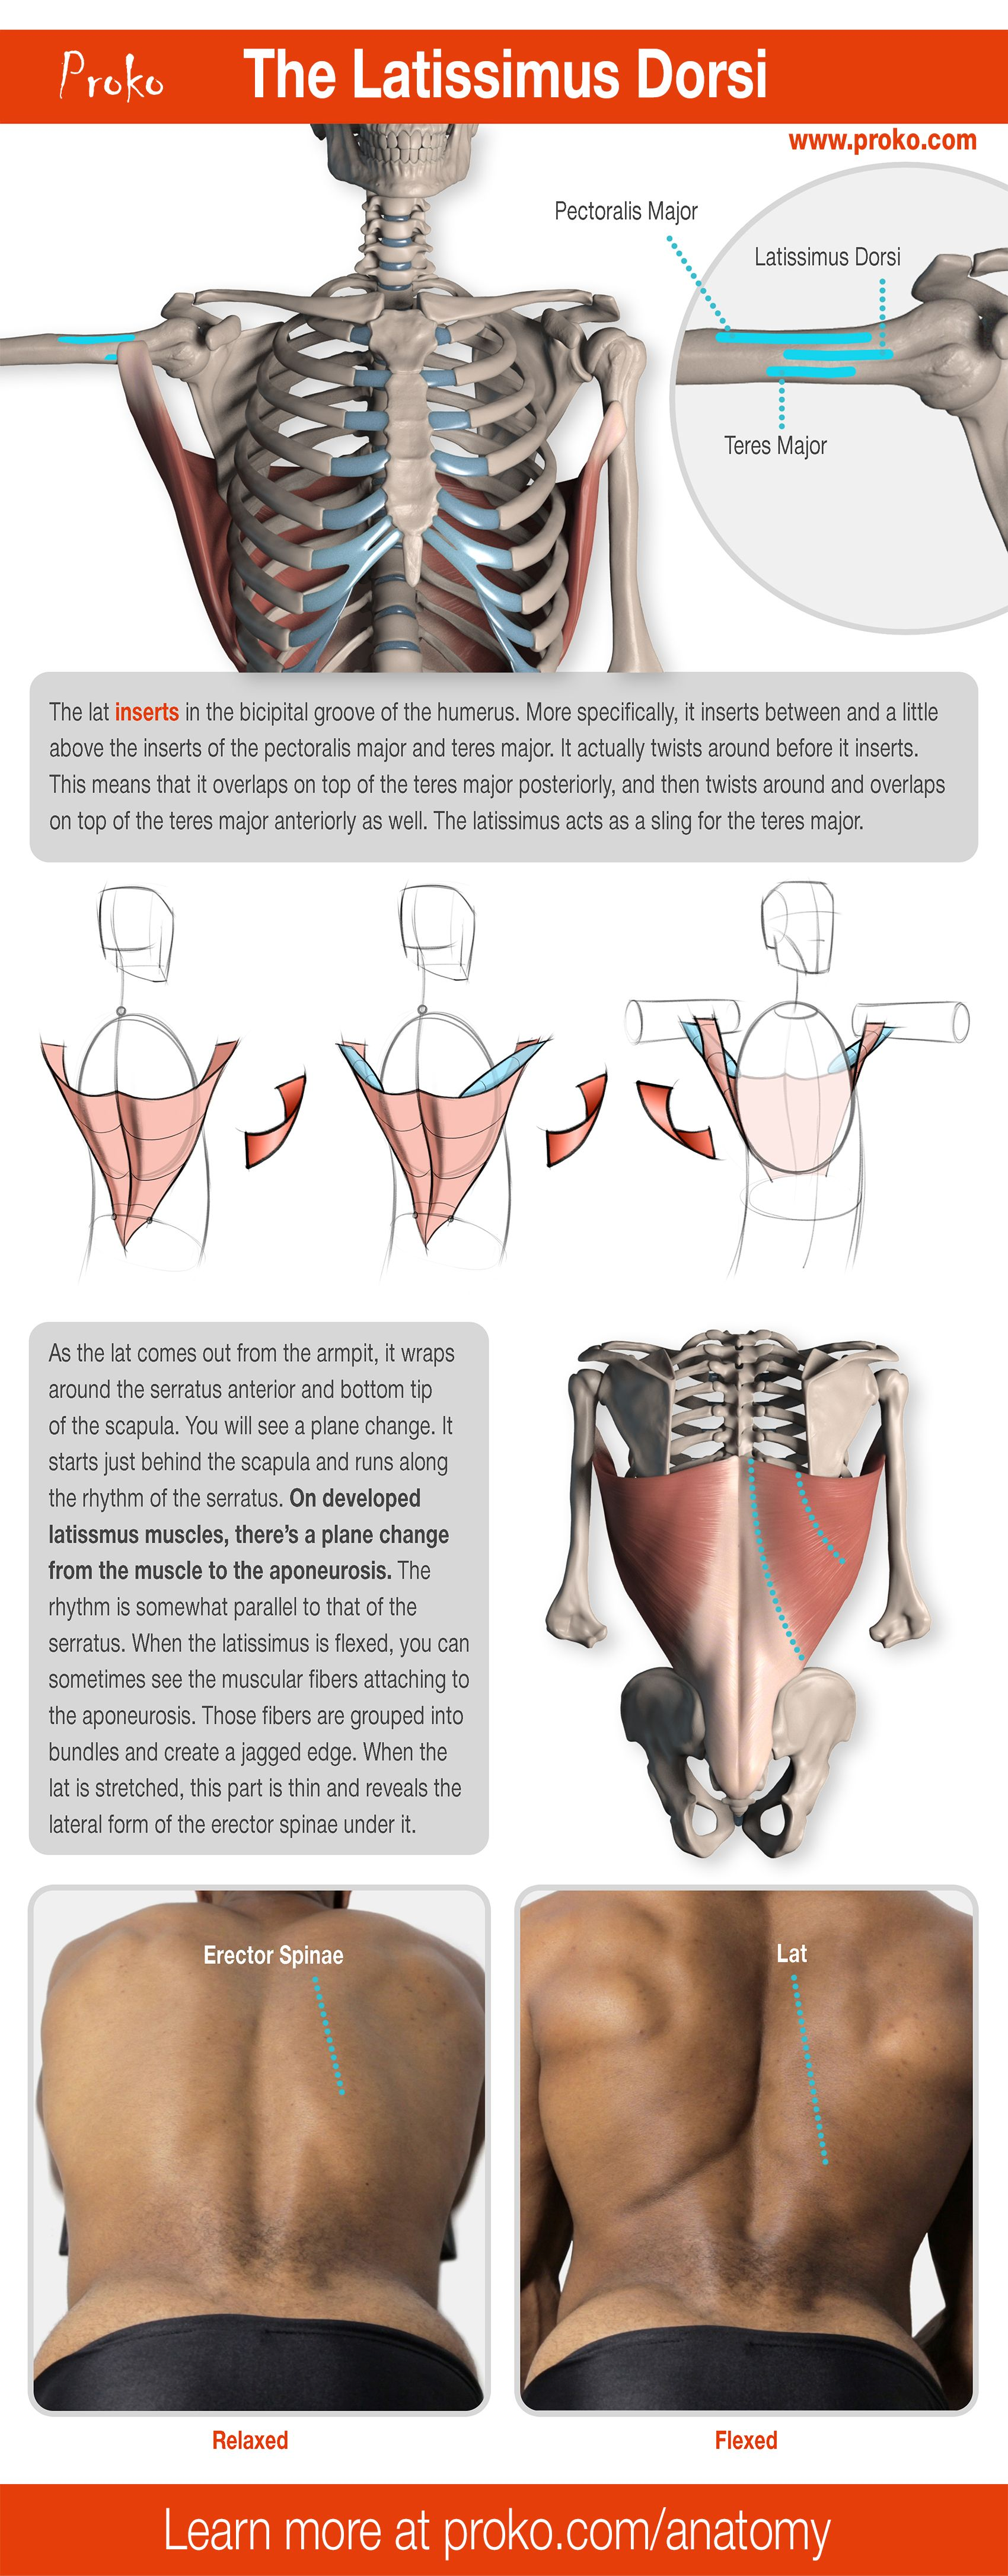 Anatomy Of The Human Body For Artists Course Pinterest Muscles